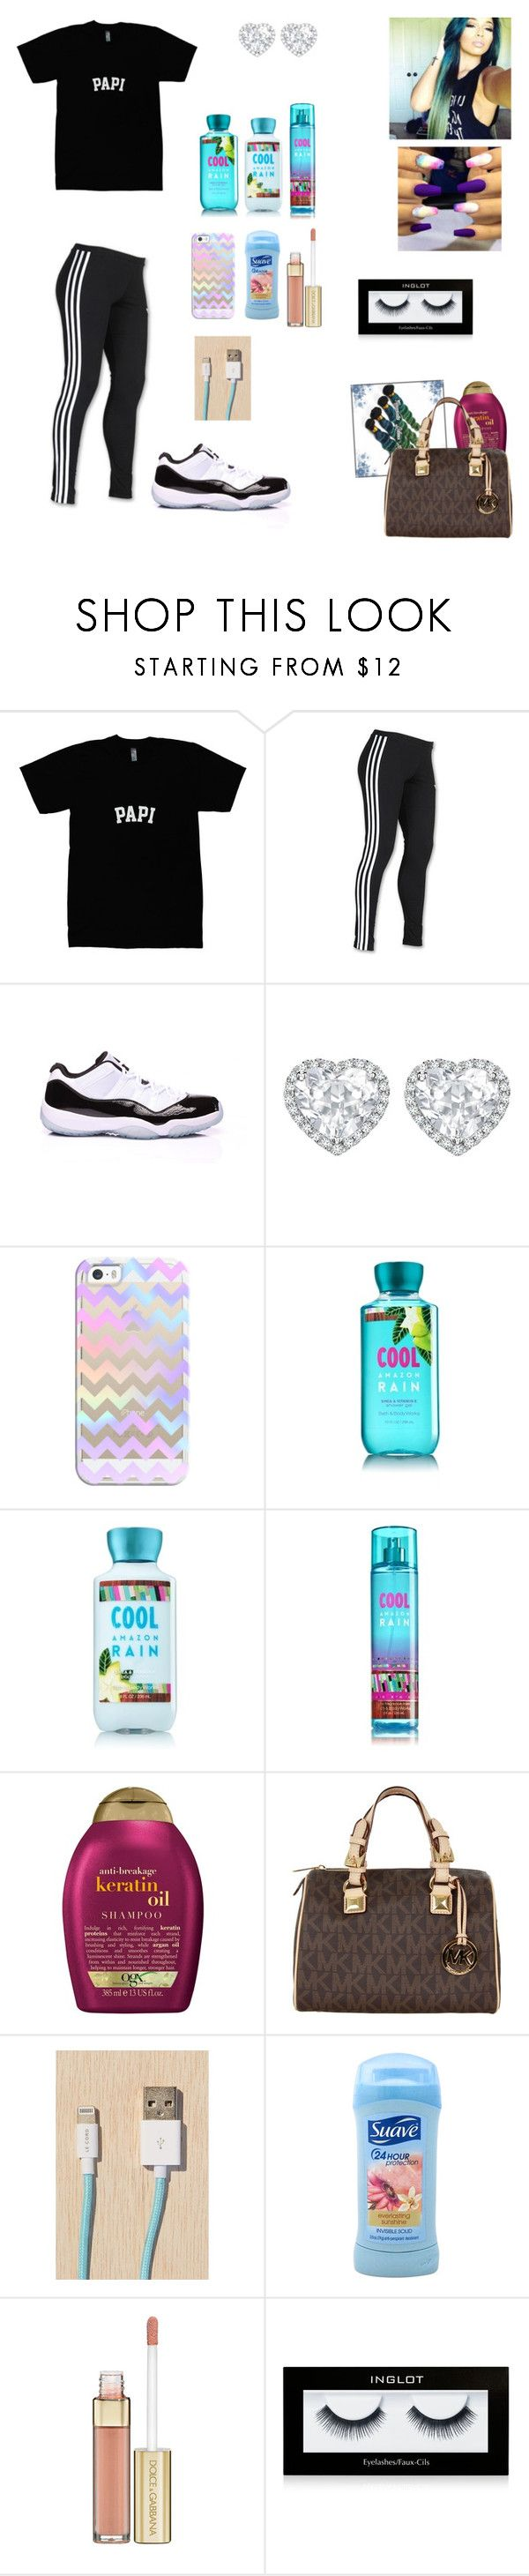 """""""Hair Appointment"""" by guapxgoddess ❤ liked on Polyvore featuring adidas, Concord, Kiki mcdonough, Sanders, Casetify, Organix, MICHAEL Michael Kors, Le Cord, Suave and Dolce&Gabbana"""